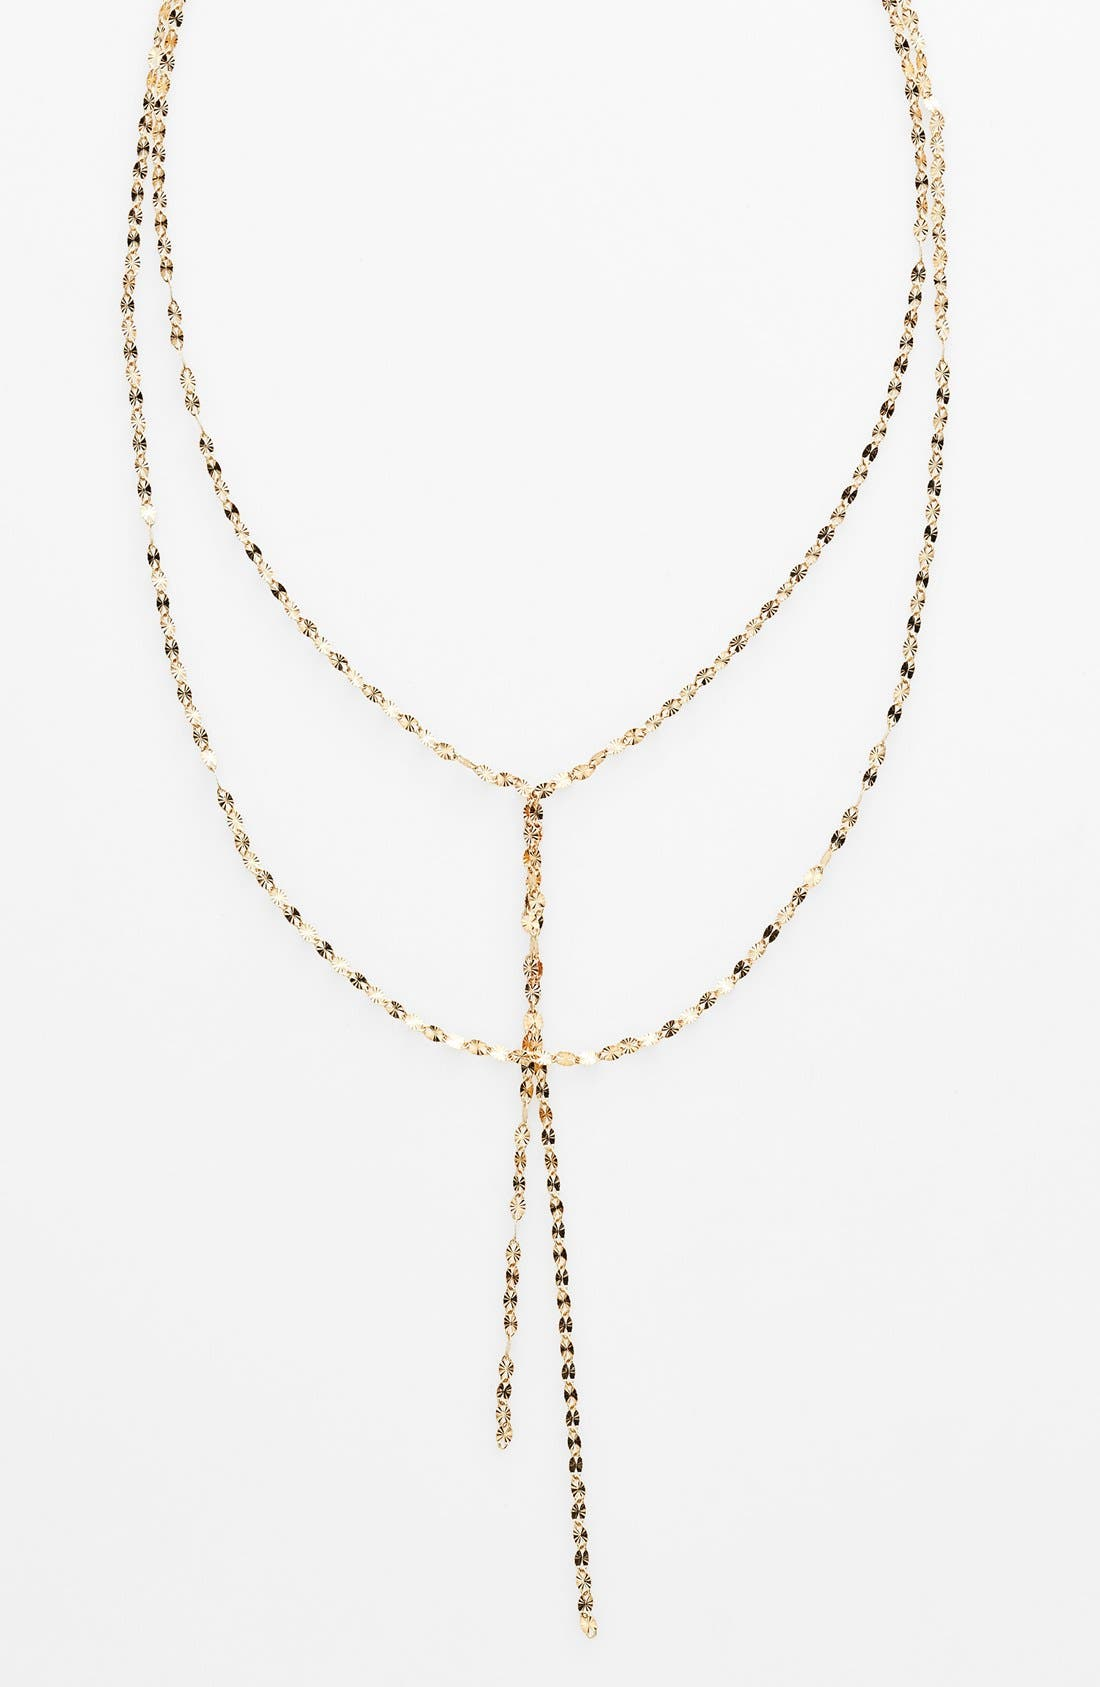 'Mega Blake' Lariat Necklace,                             Alternate thumbnail 4, color,                             YELLOW GOLD